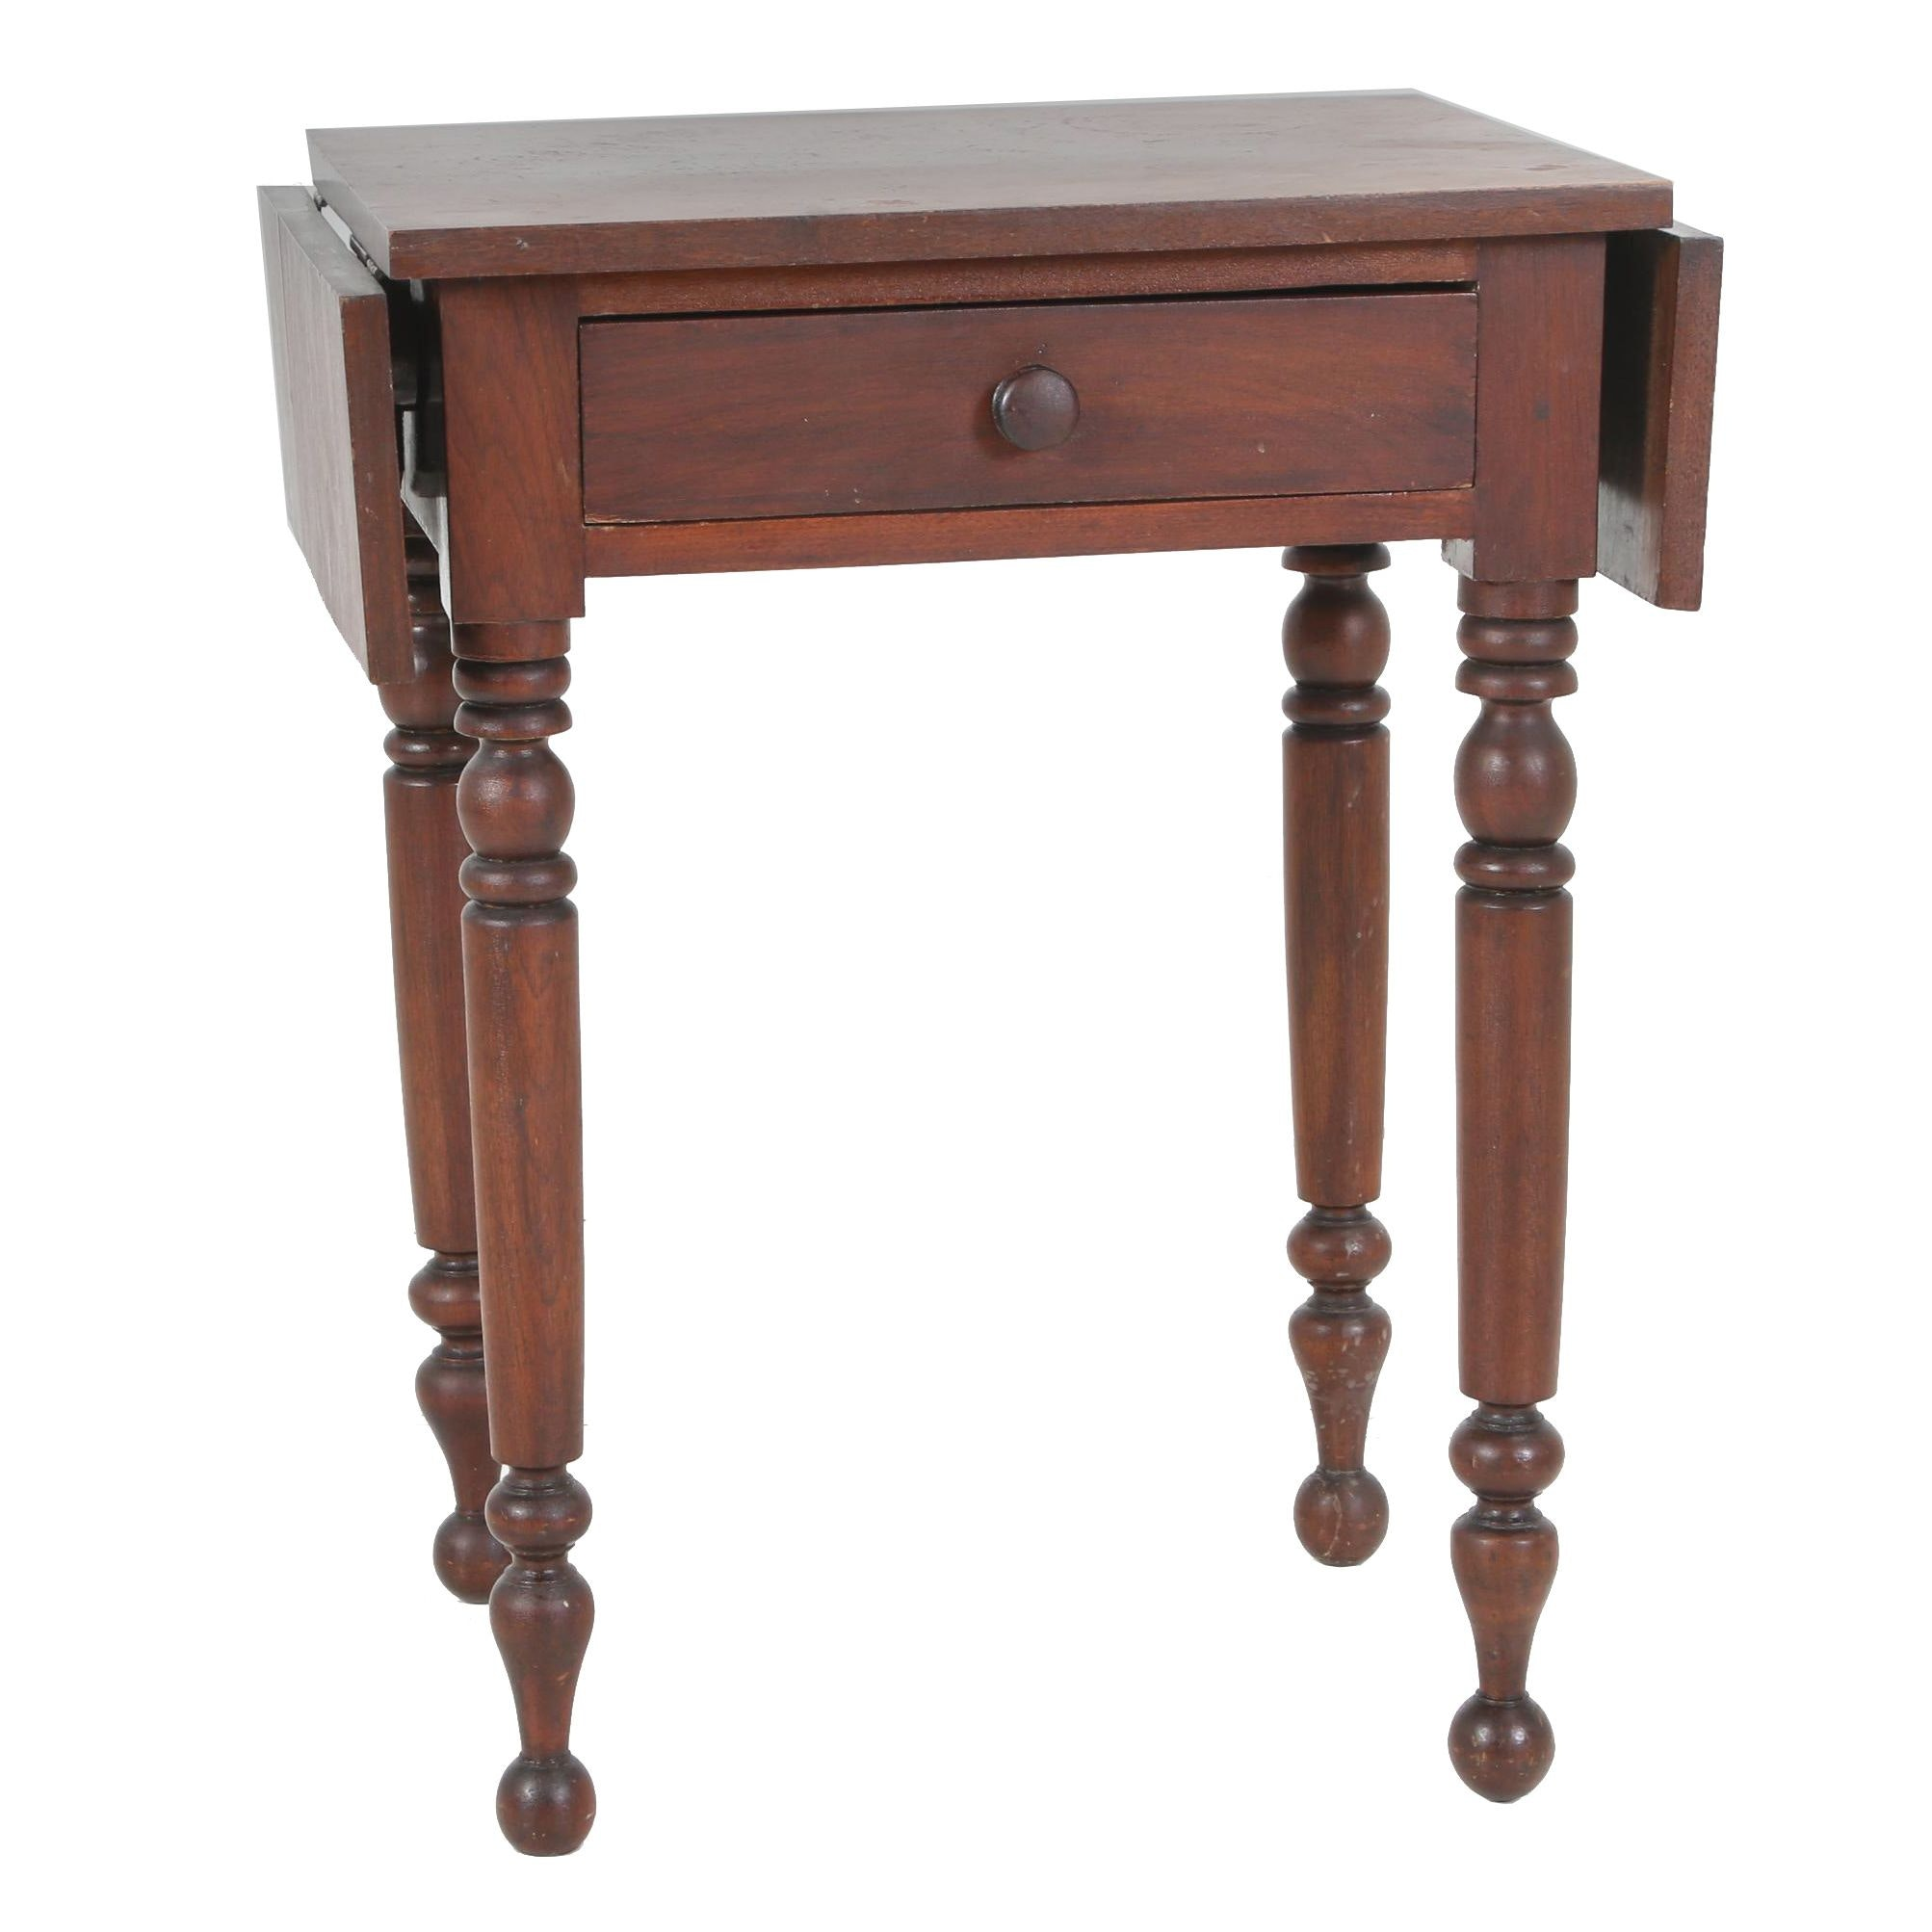 American Mahogany One-Drawer Side Table with Drop Leaves, 19th Century